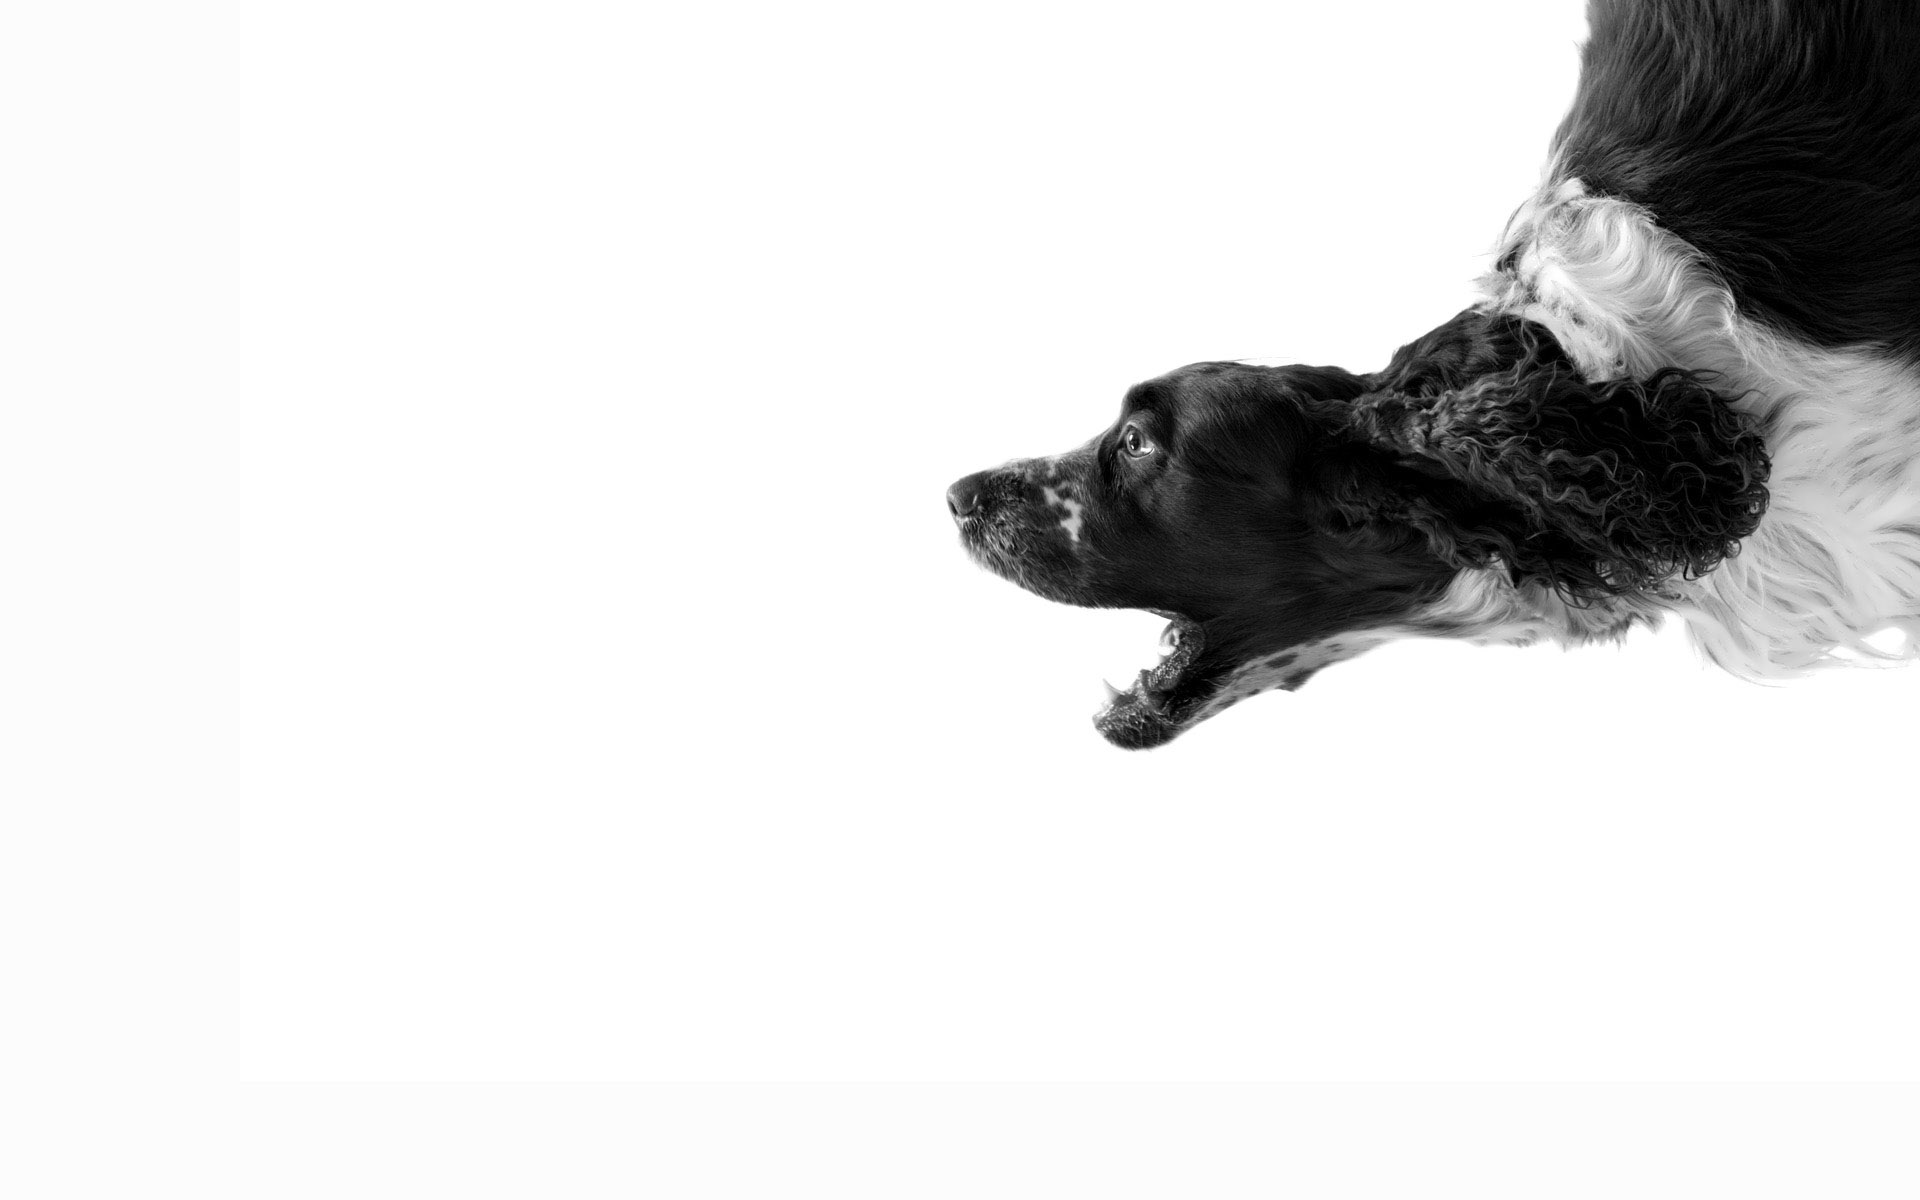 Hd wallpaper white background - Black And White Dog With White Background Hd